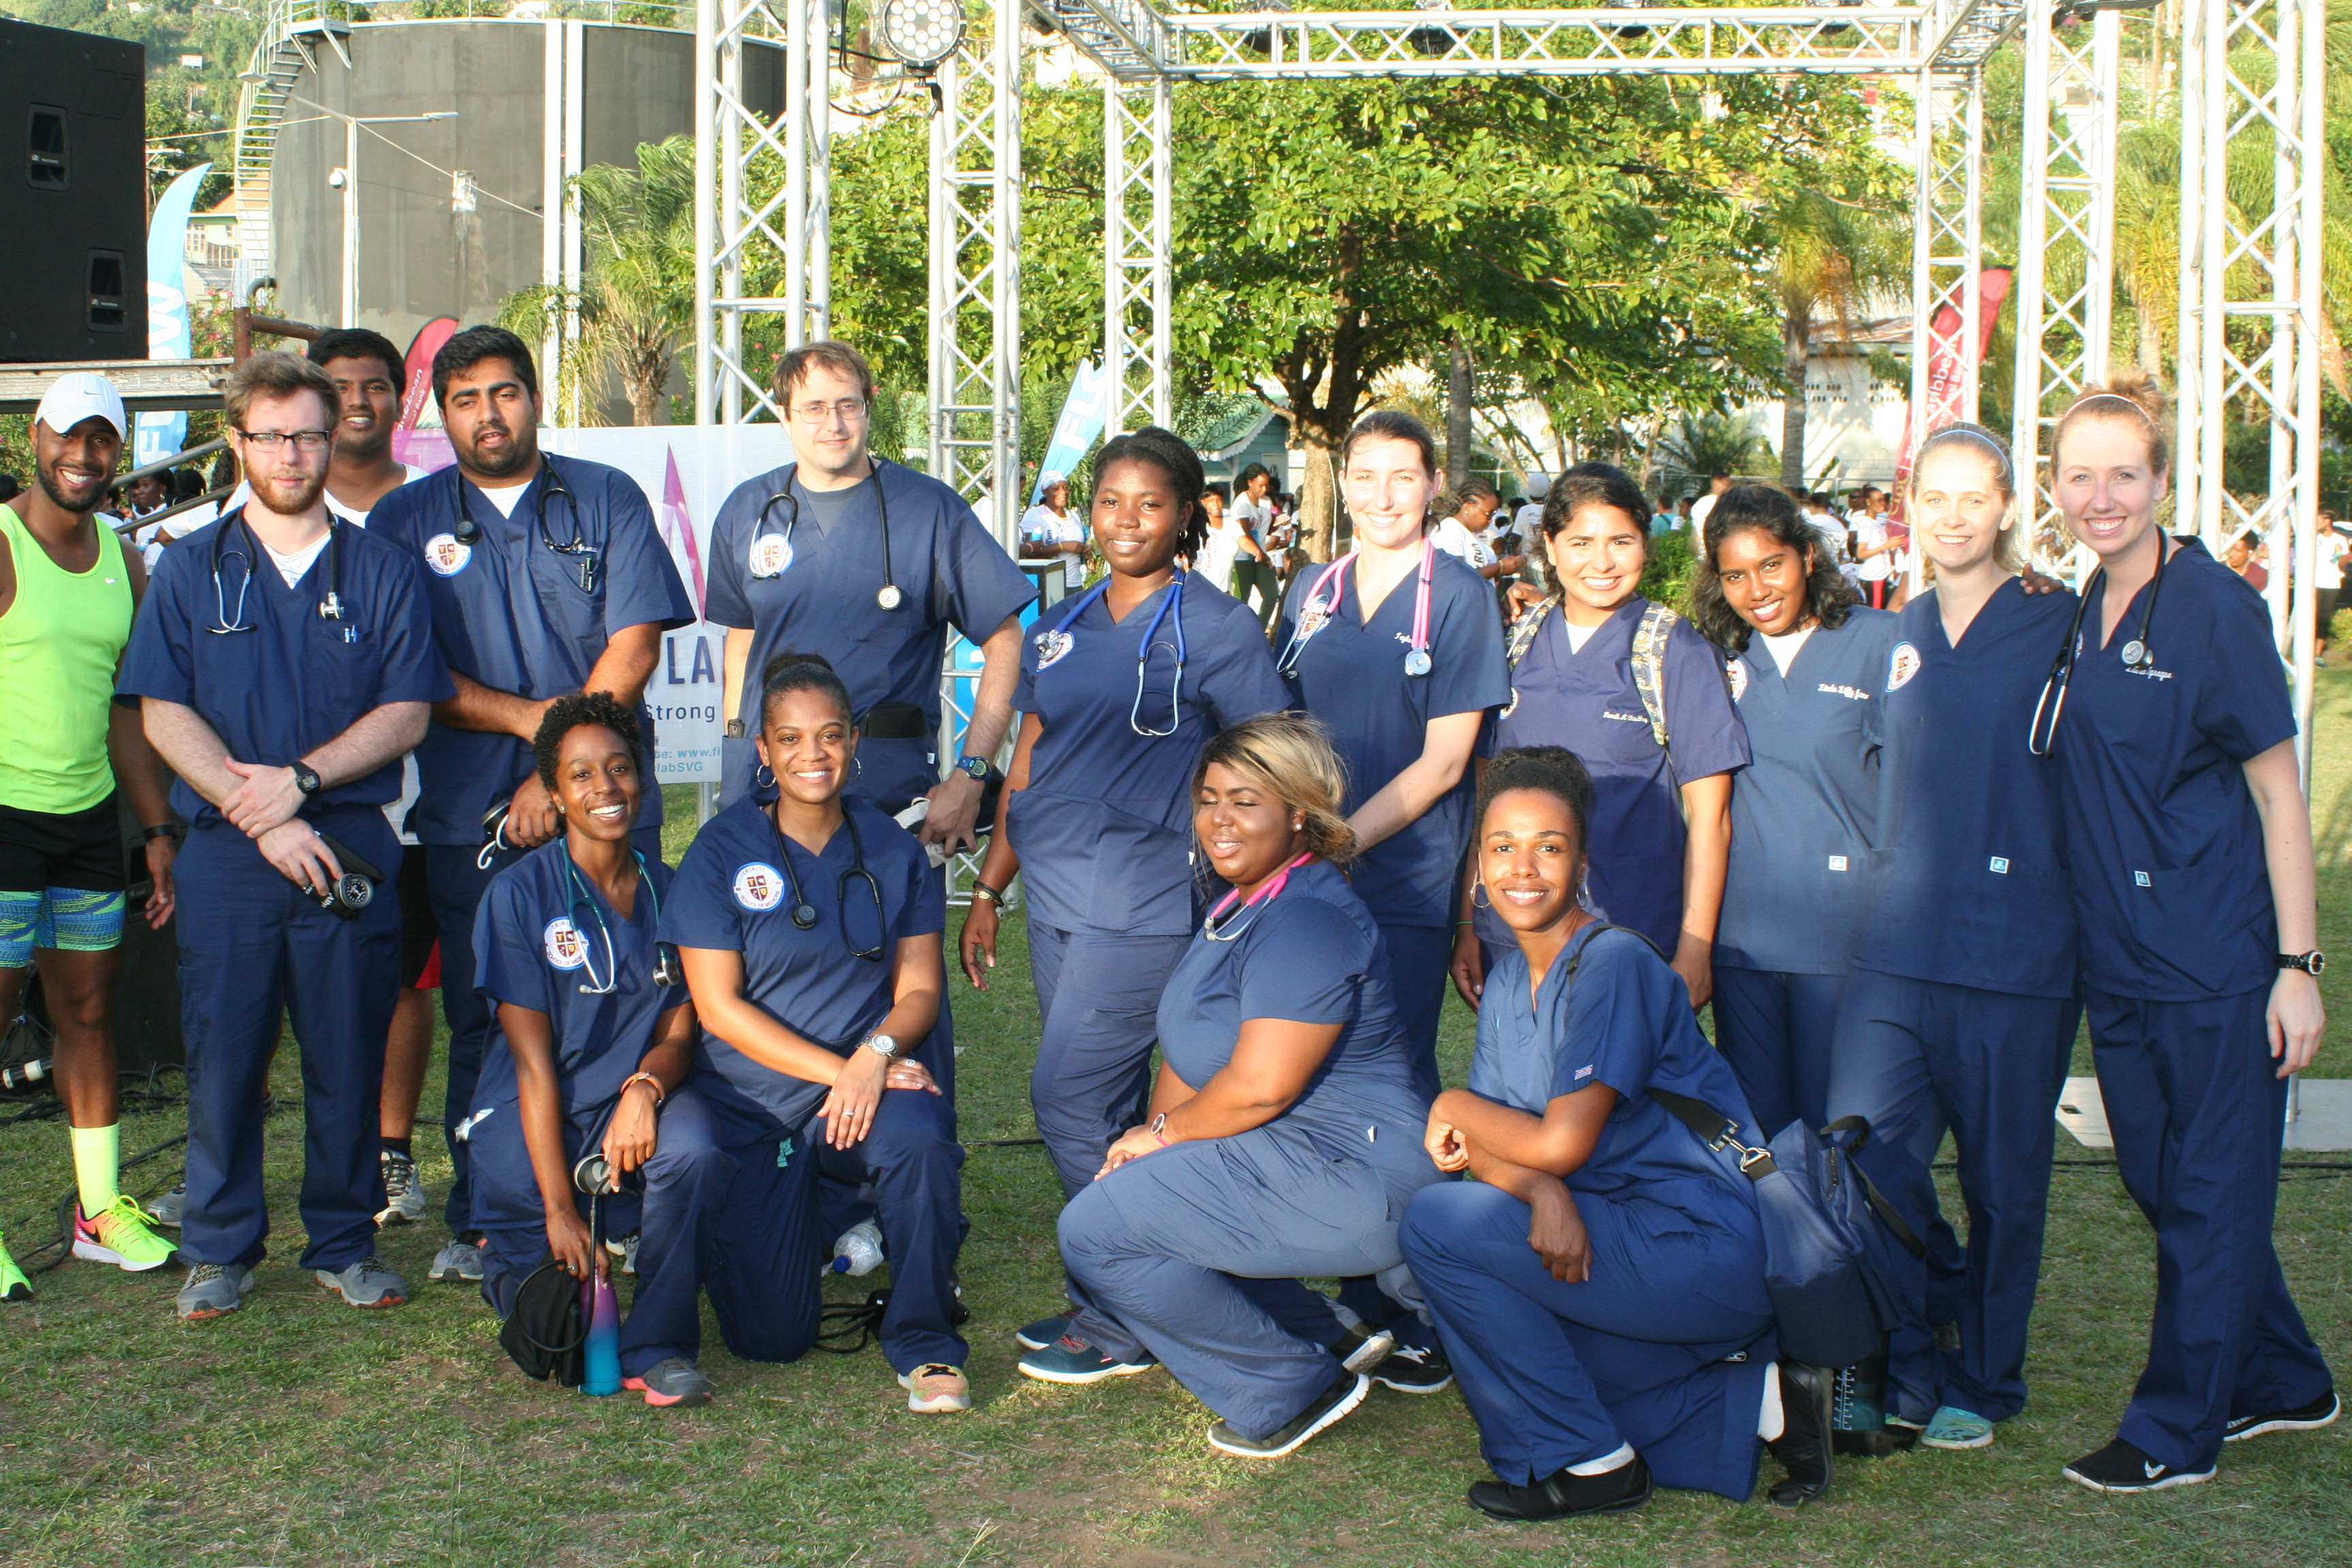 Trinity School of Medicine Students Provide Health Checks Prior to Local Running Event